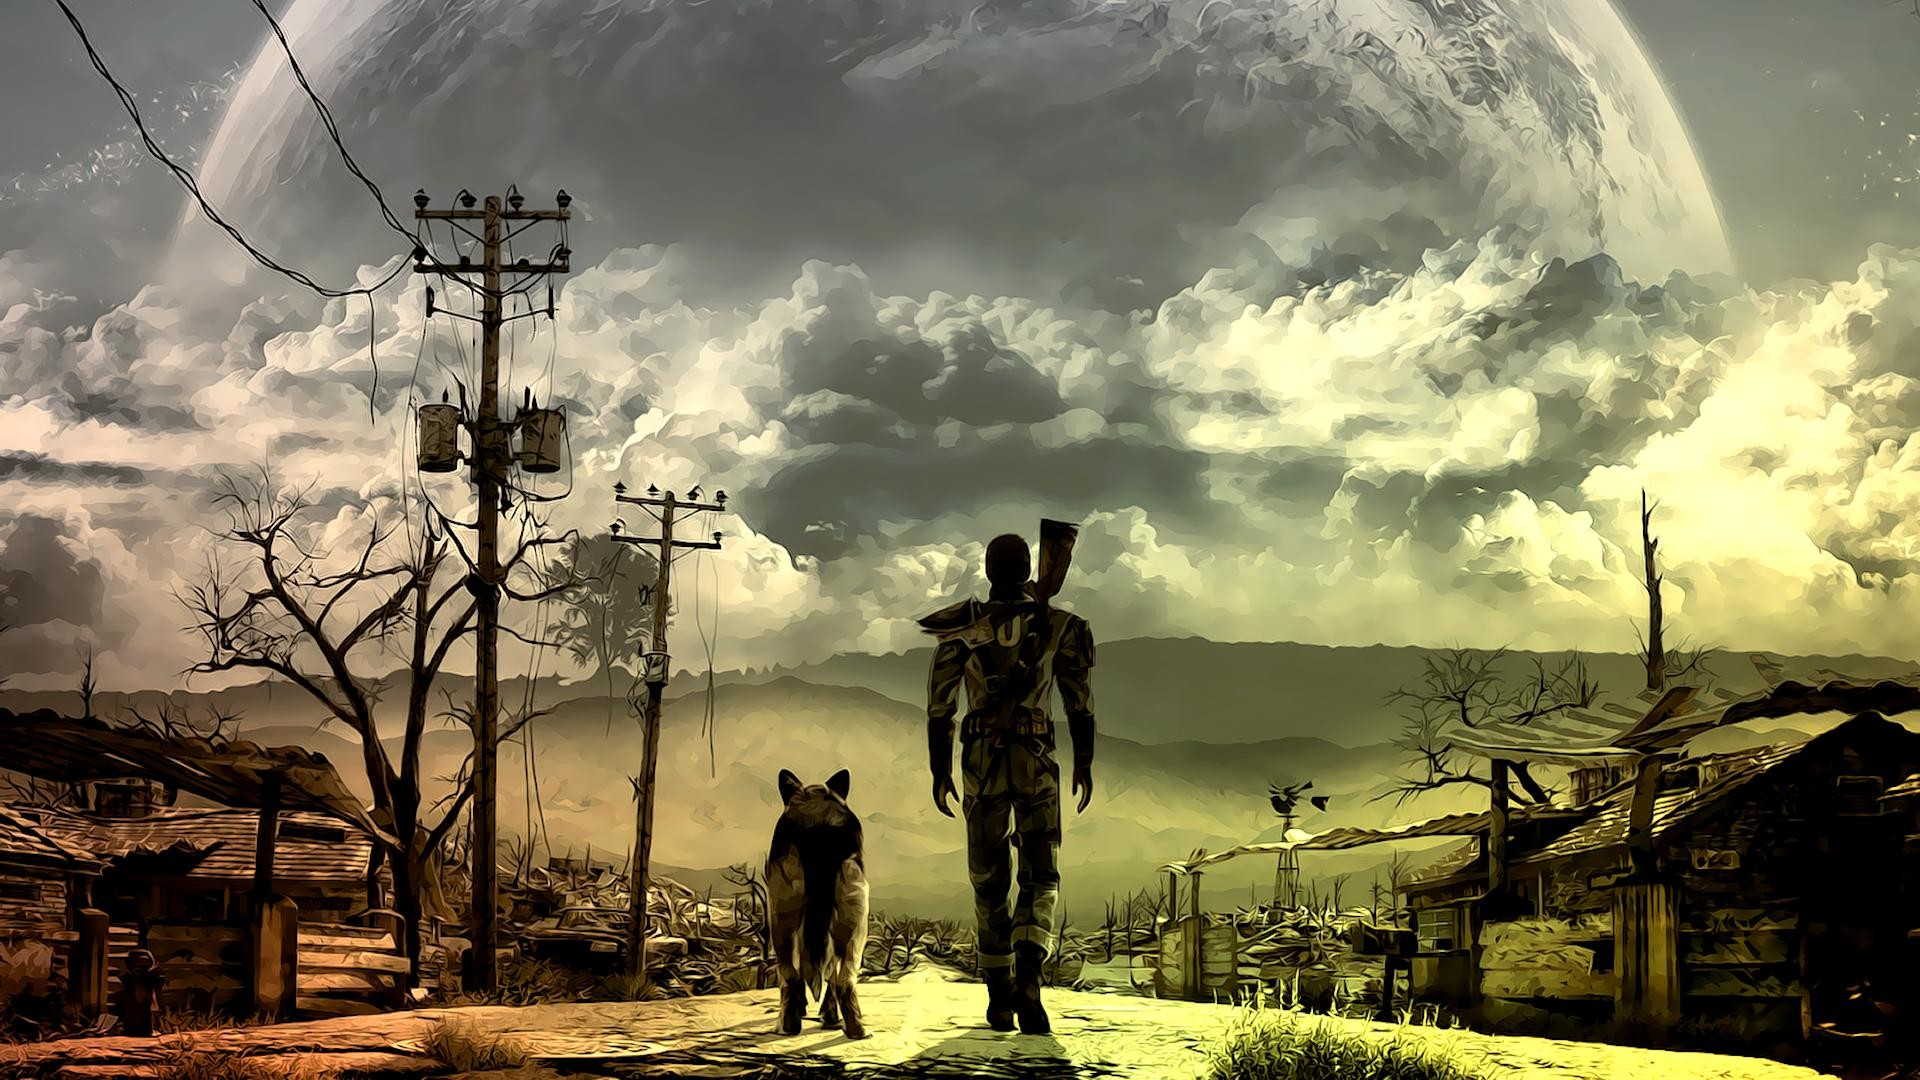 Res: 1920x1080, fallout wallpapers ()